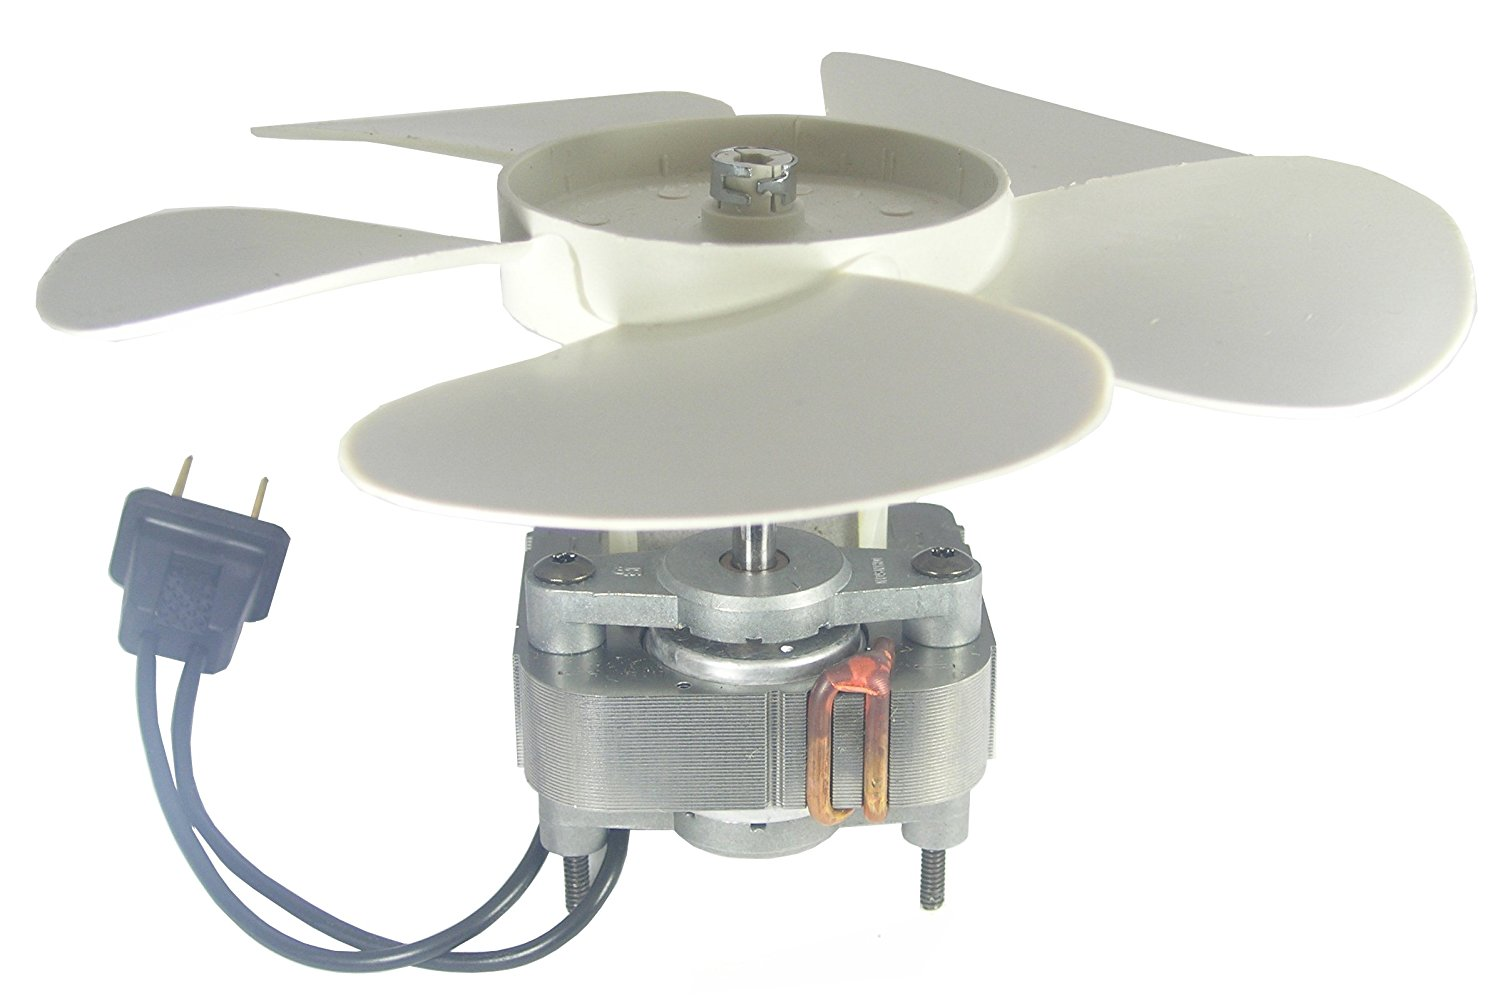 nutone s1200a000 bathroom fan motor assembly walmart com rh walmart com Bathroom Fan Assembly Older Bathroom Fan Replacement Assembly